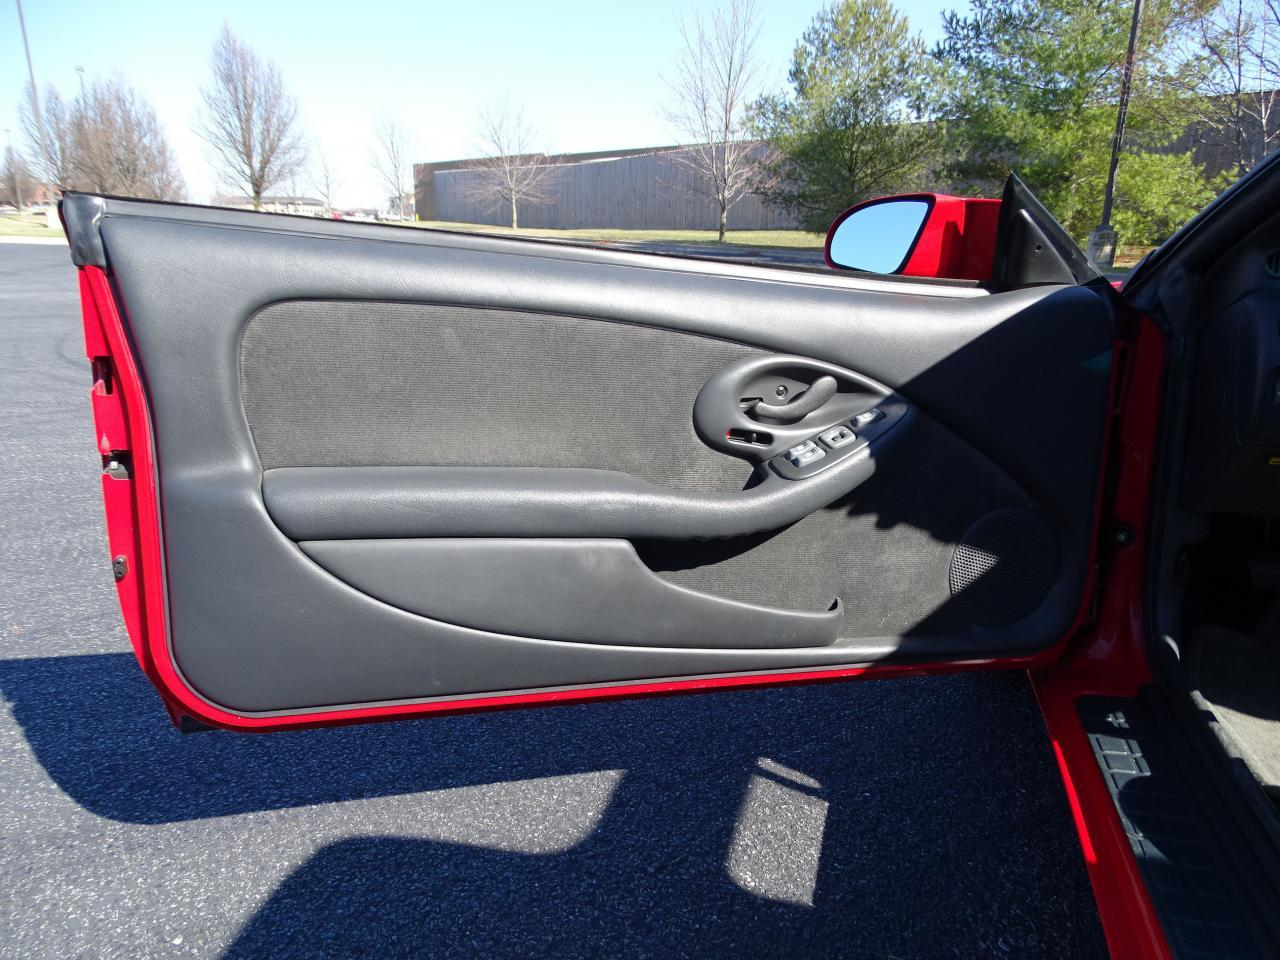 Large Picture of 1996 Pontiac Firebird - $8,995.00 Offered by Gateway Classic Cars - St. Louis - MZF9